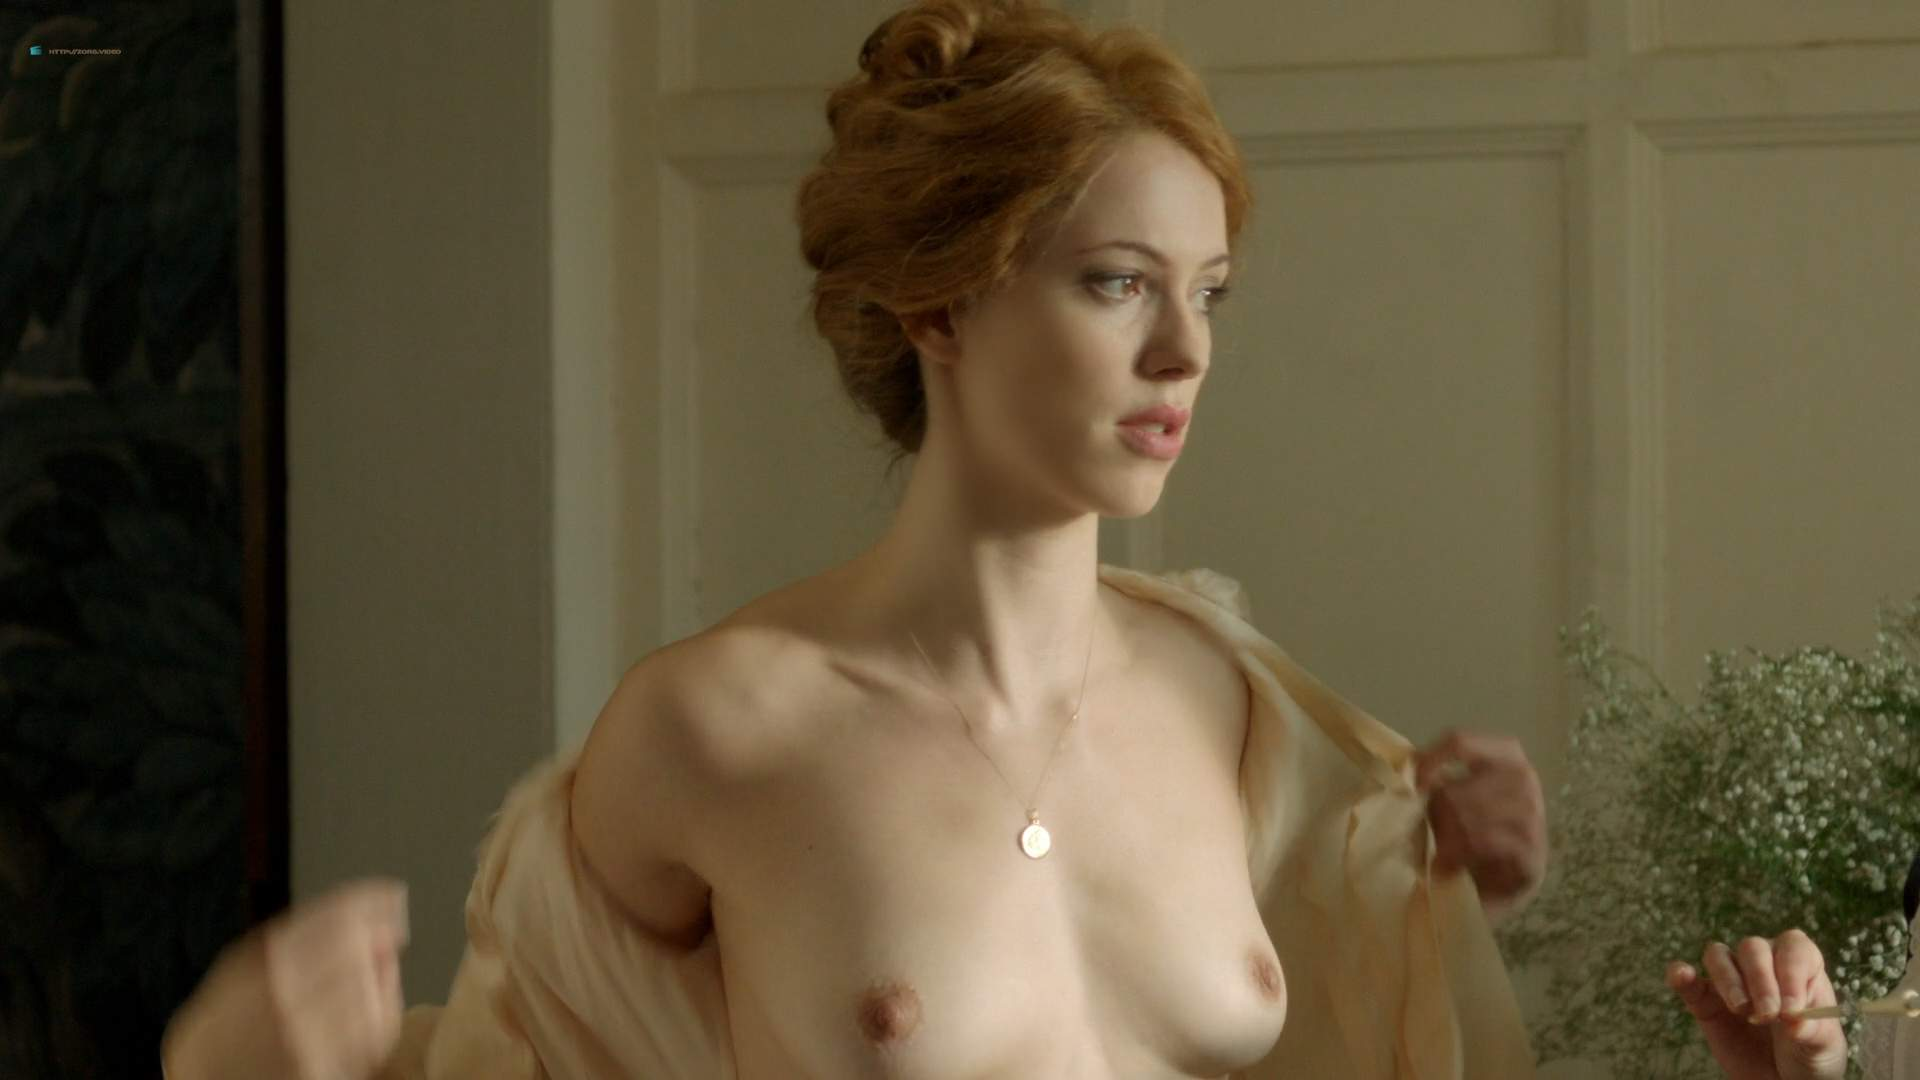 naked pictures of rebecca hall